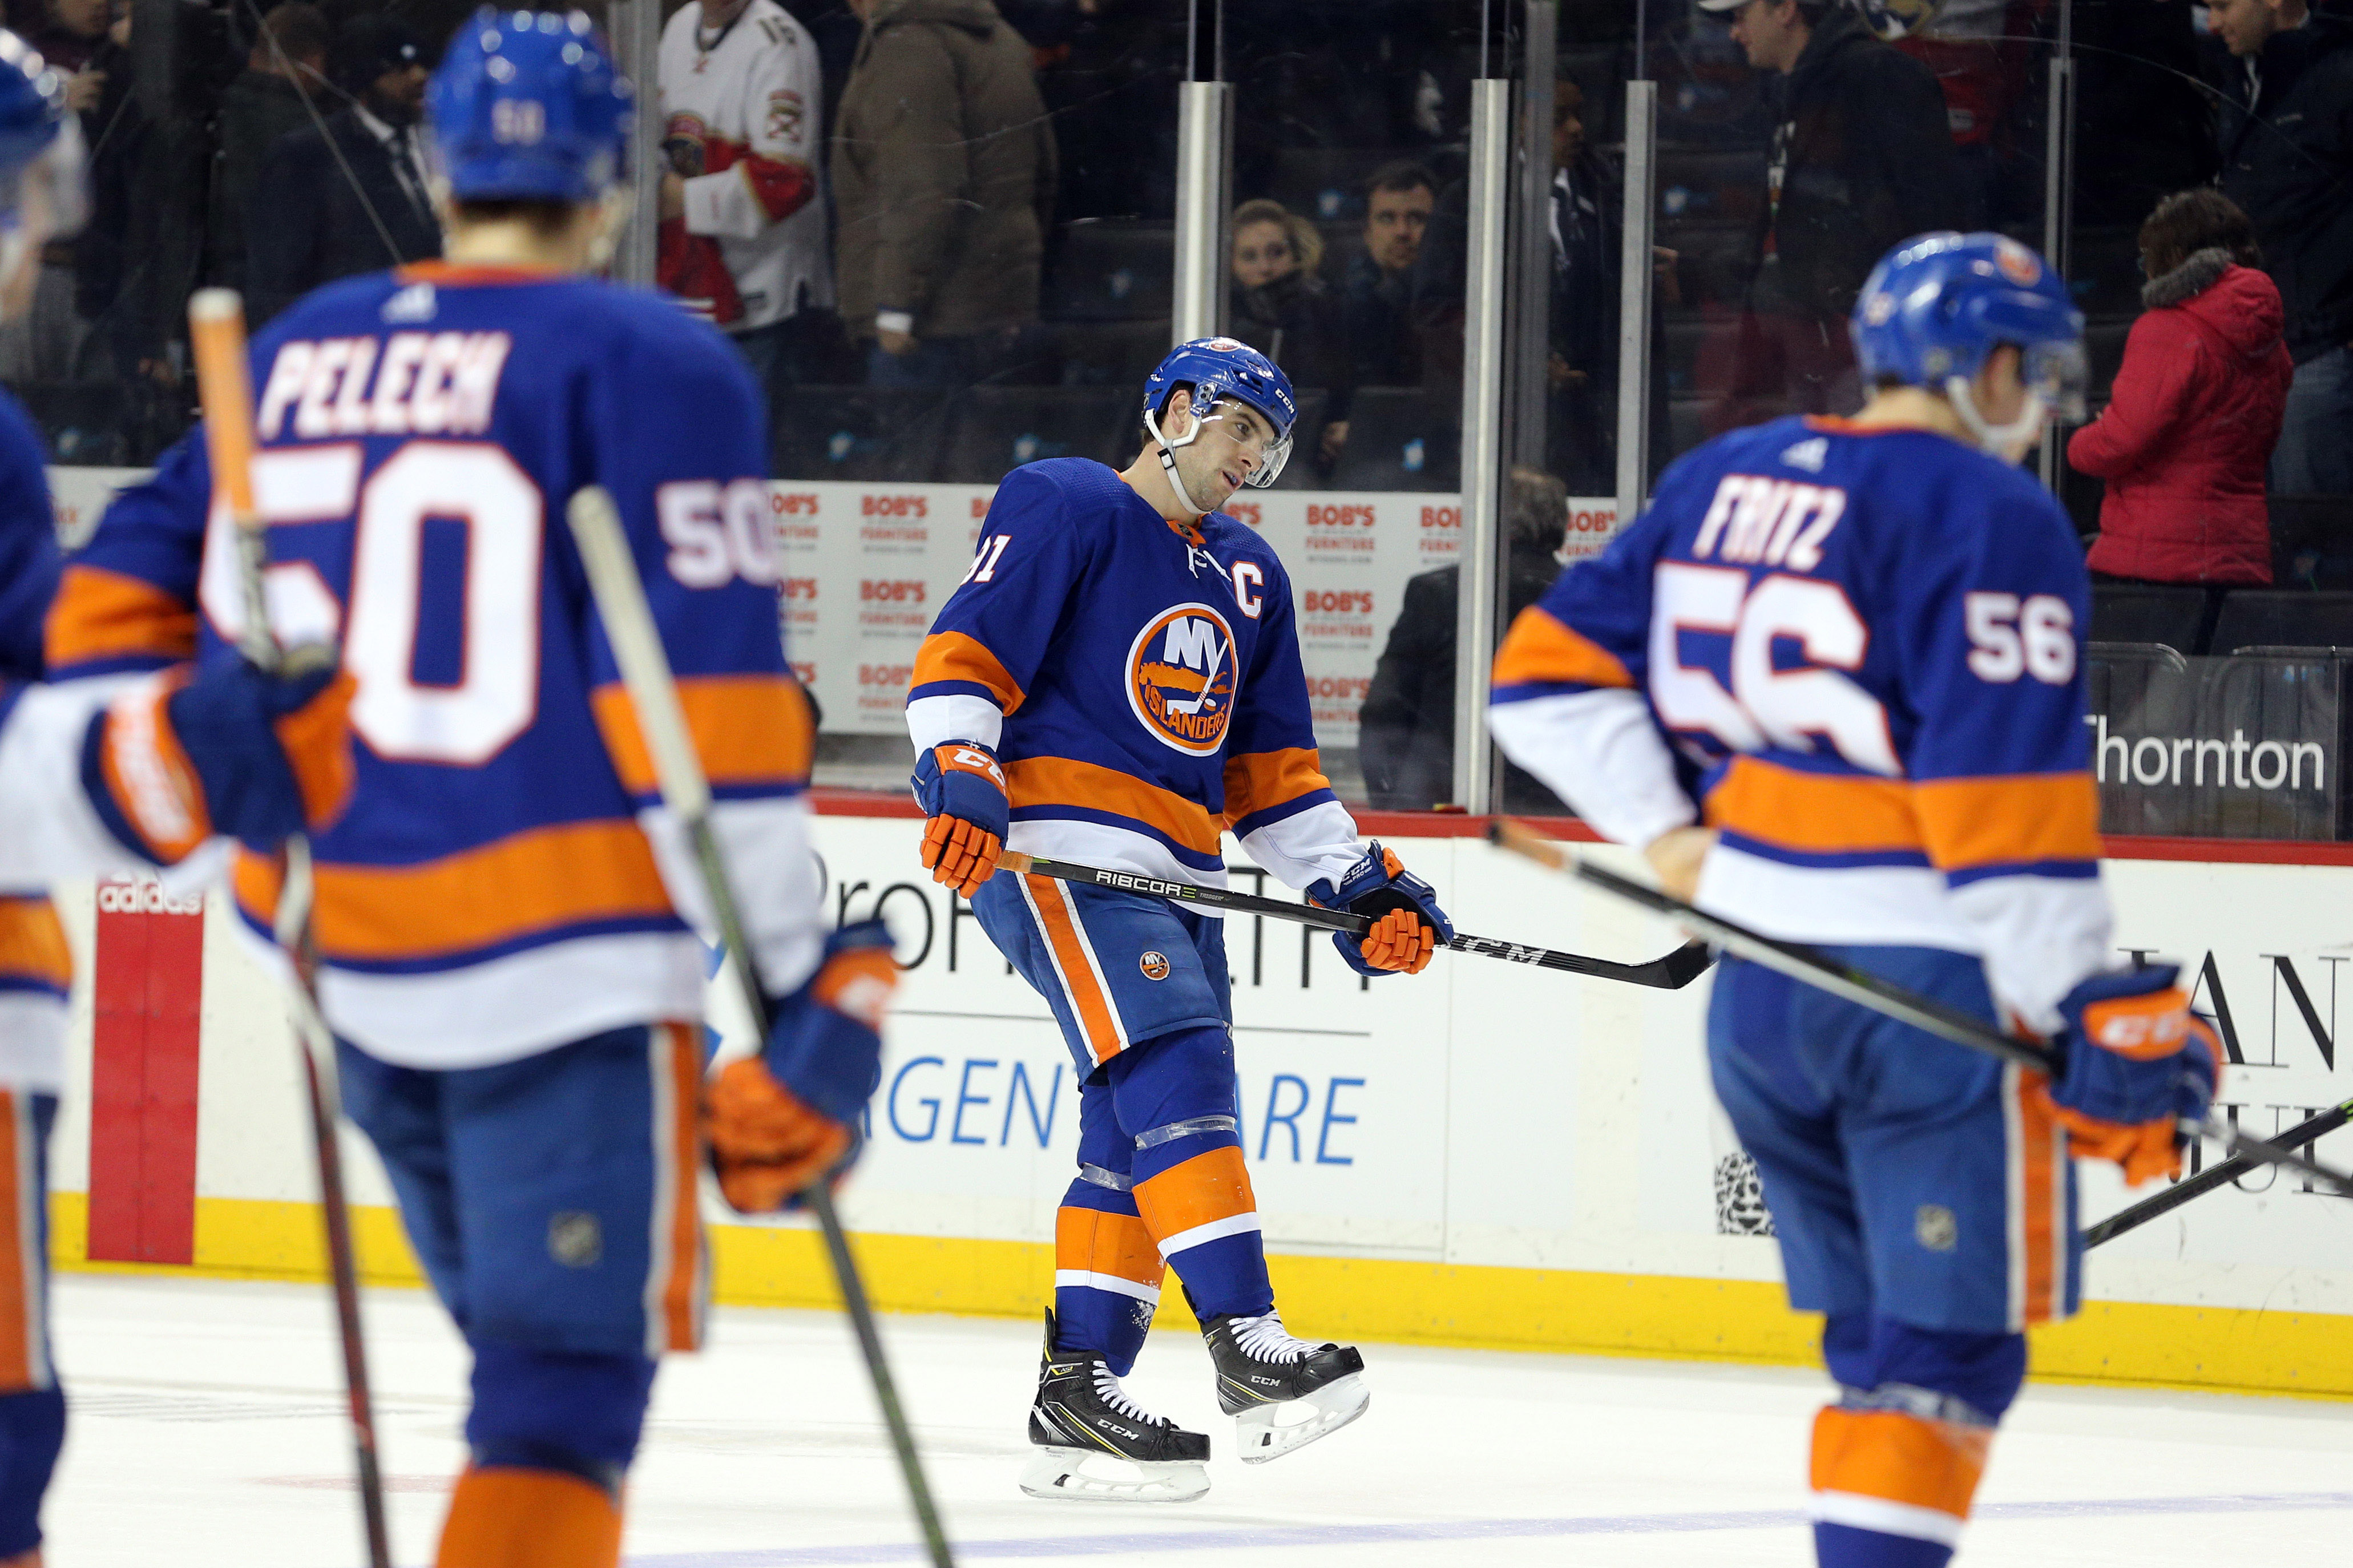 Mar 26, 2018; Brooklyn, NY, USA; New York Islanders center John Tavares (91) reacts as he skates off the ice after losing to the Florida Panthers at Barclays Center. Mandatory Credit: Brad Penner-USA TODAY Sports